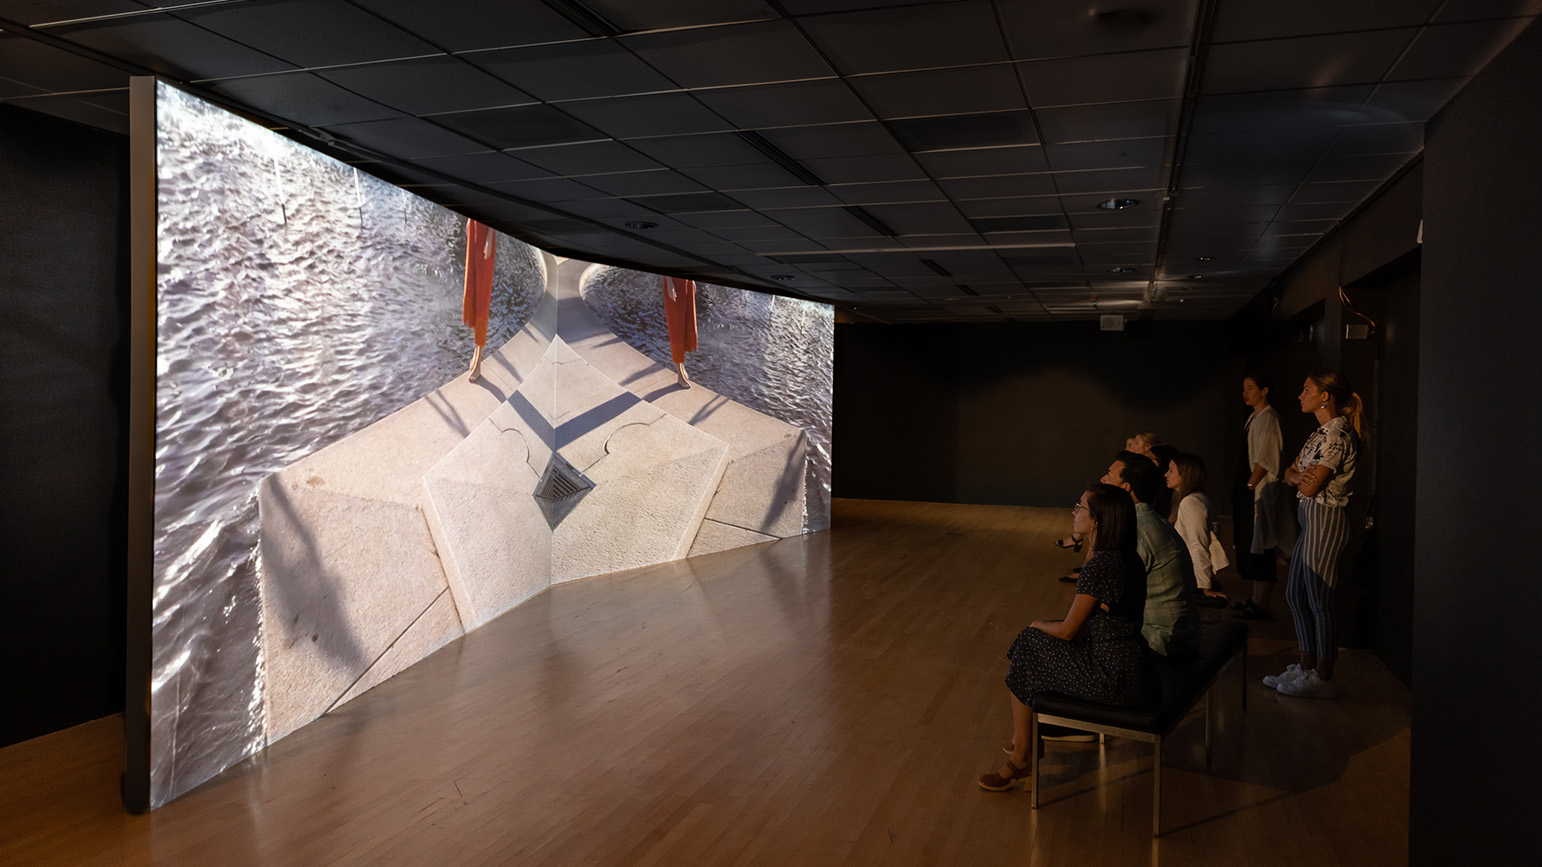 People in a gallery watching a projection on a massive screen